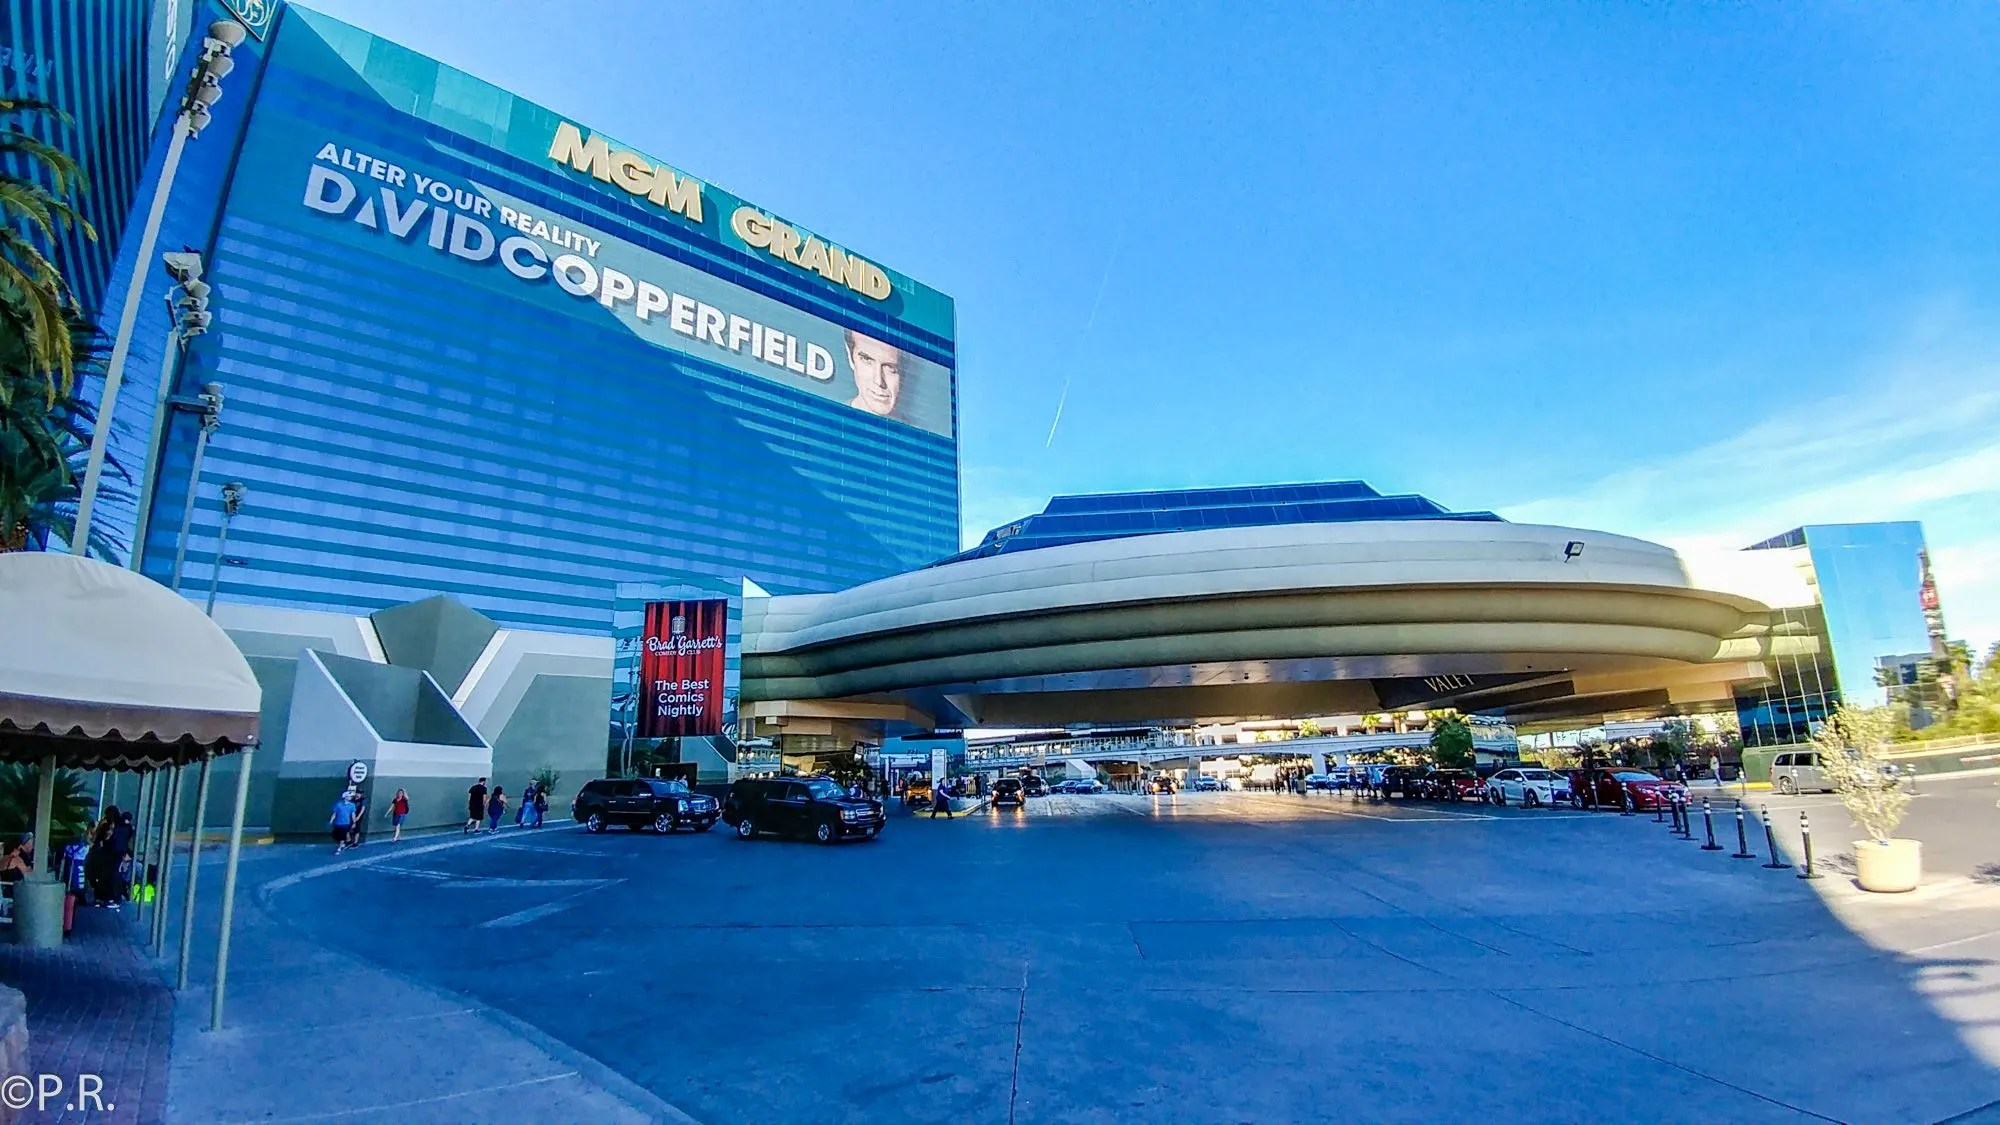 Hotel Review: MGM Grand Las Vegas